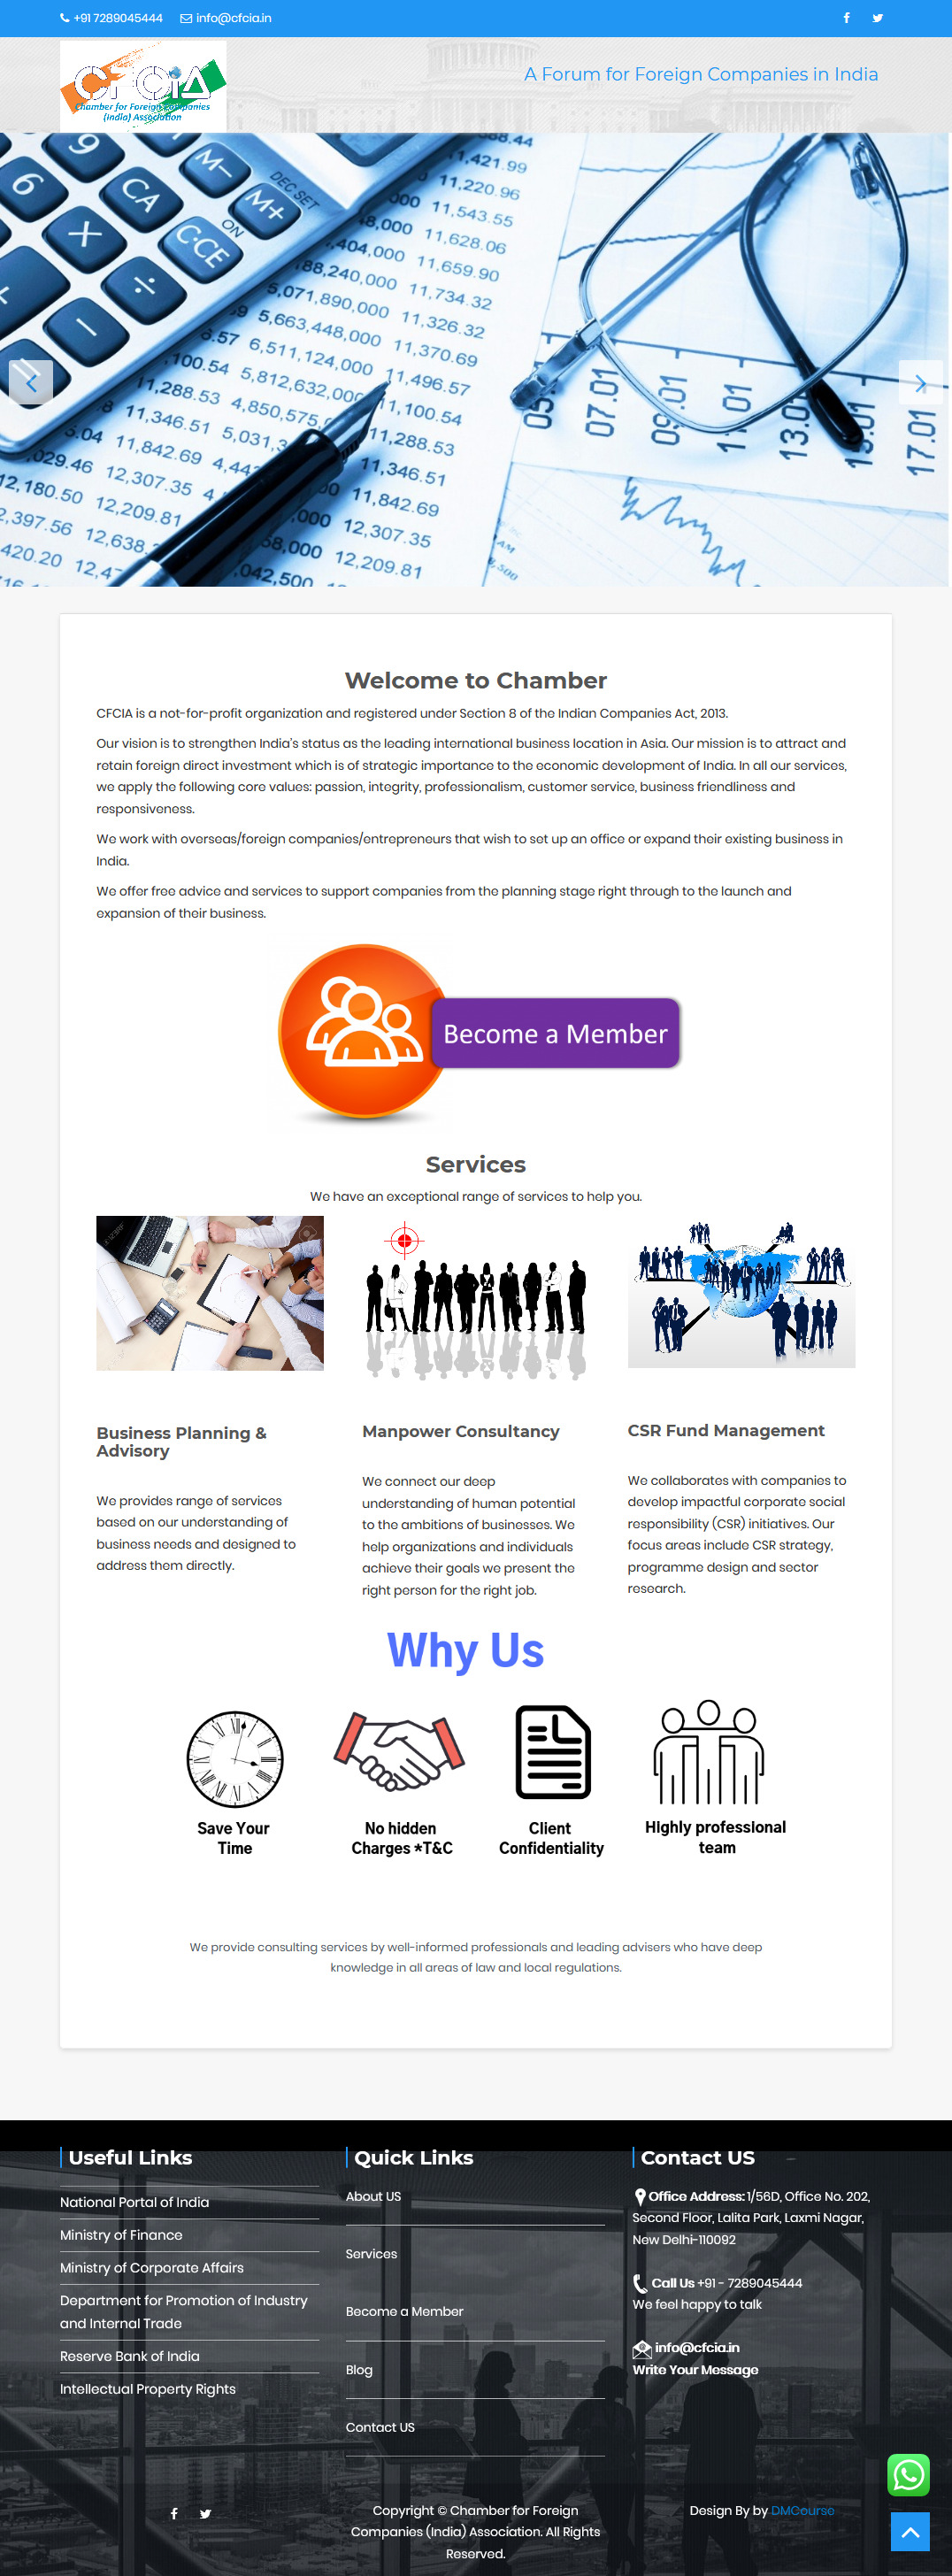 Professional Business Website https://cfcia.in